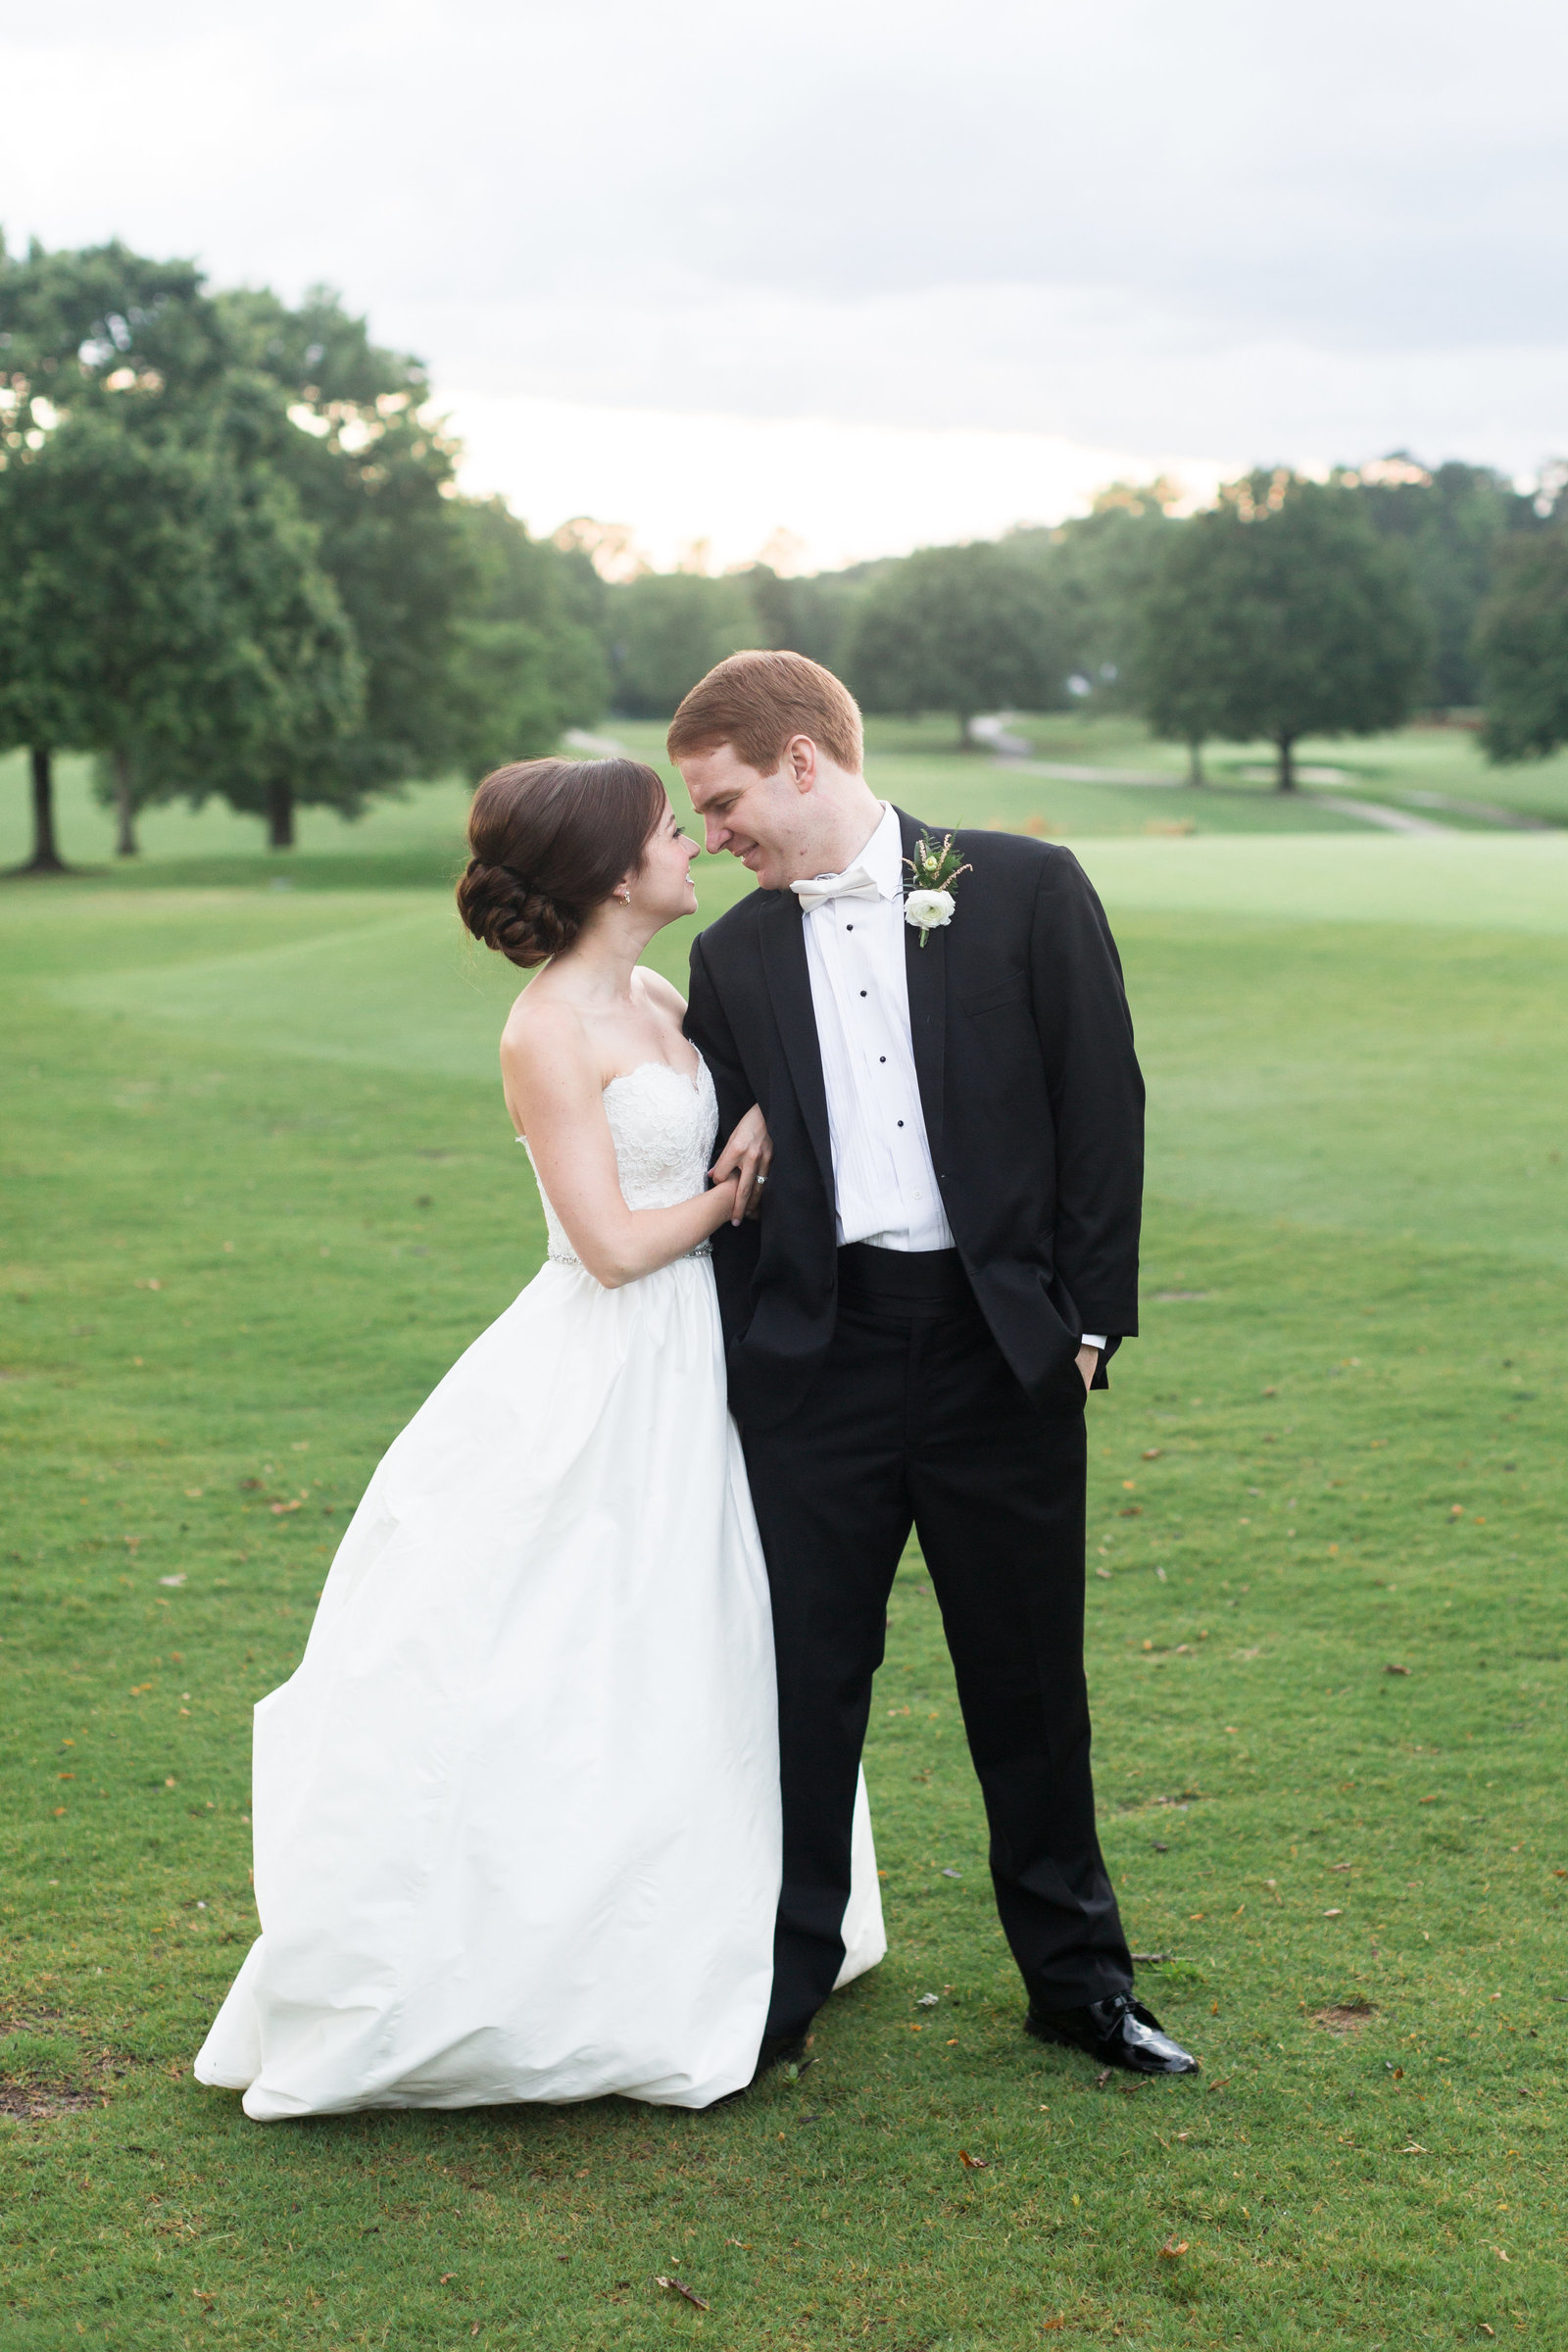 Thomas and Lauren-Samantha Laffoon Photography-196